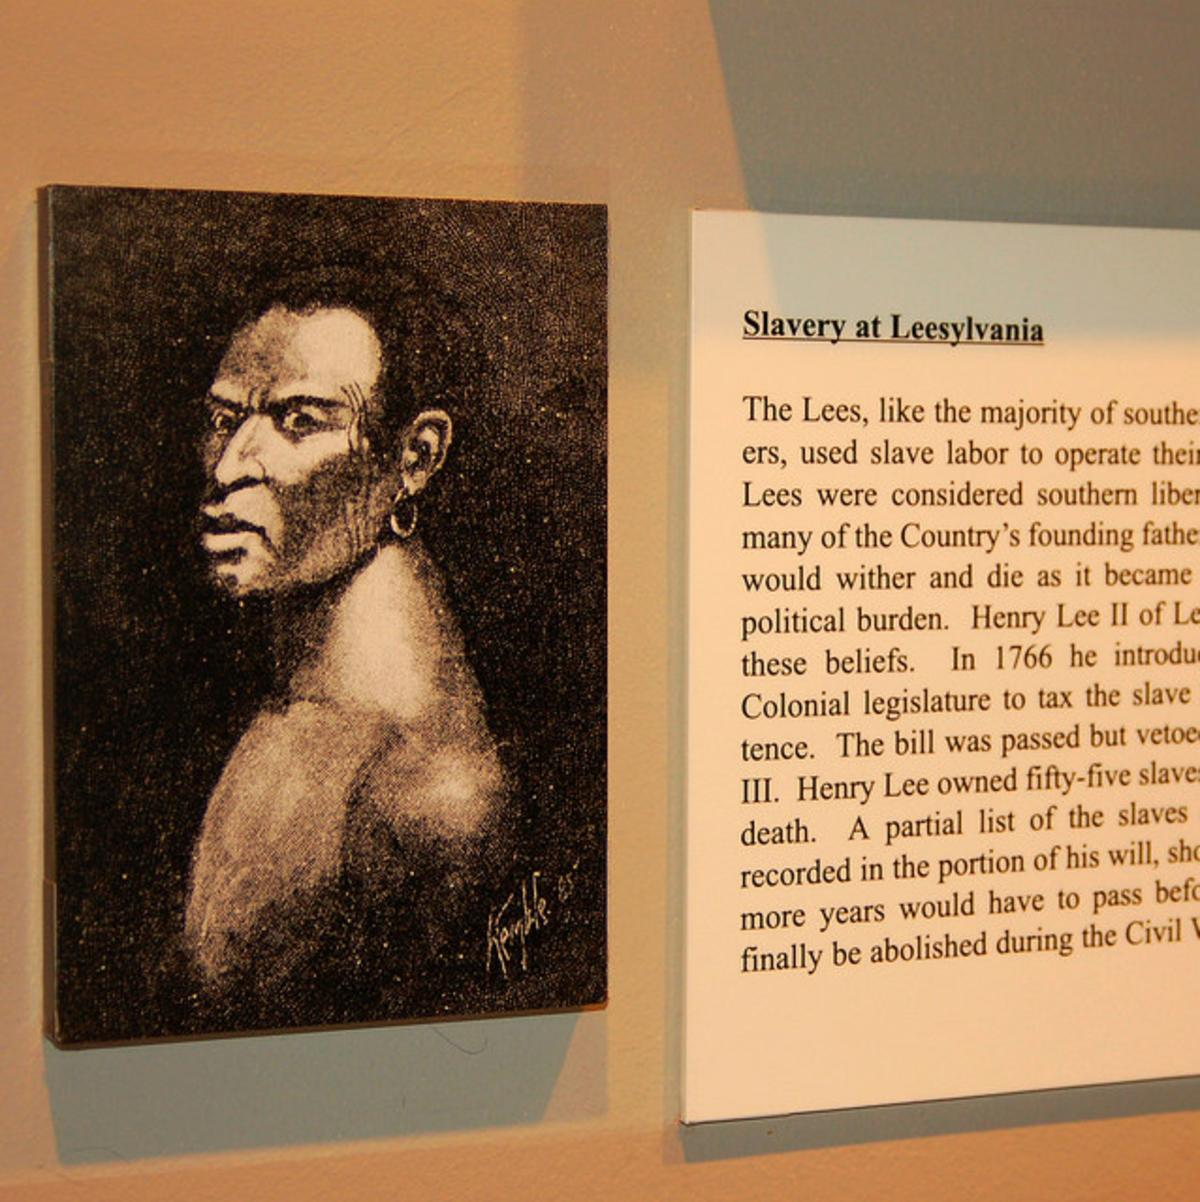 drawing of a representation of a slave alongside text explaining the history of slavery at Leesylvania